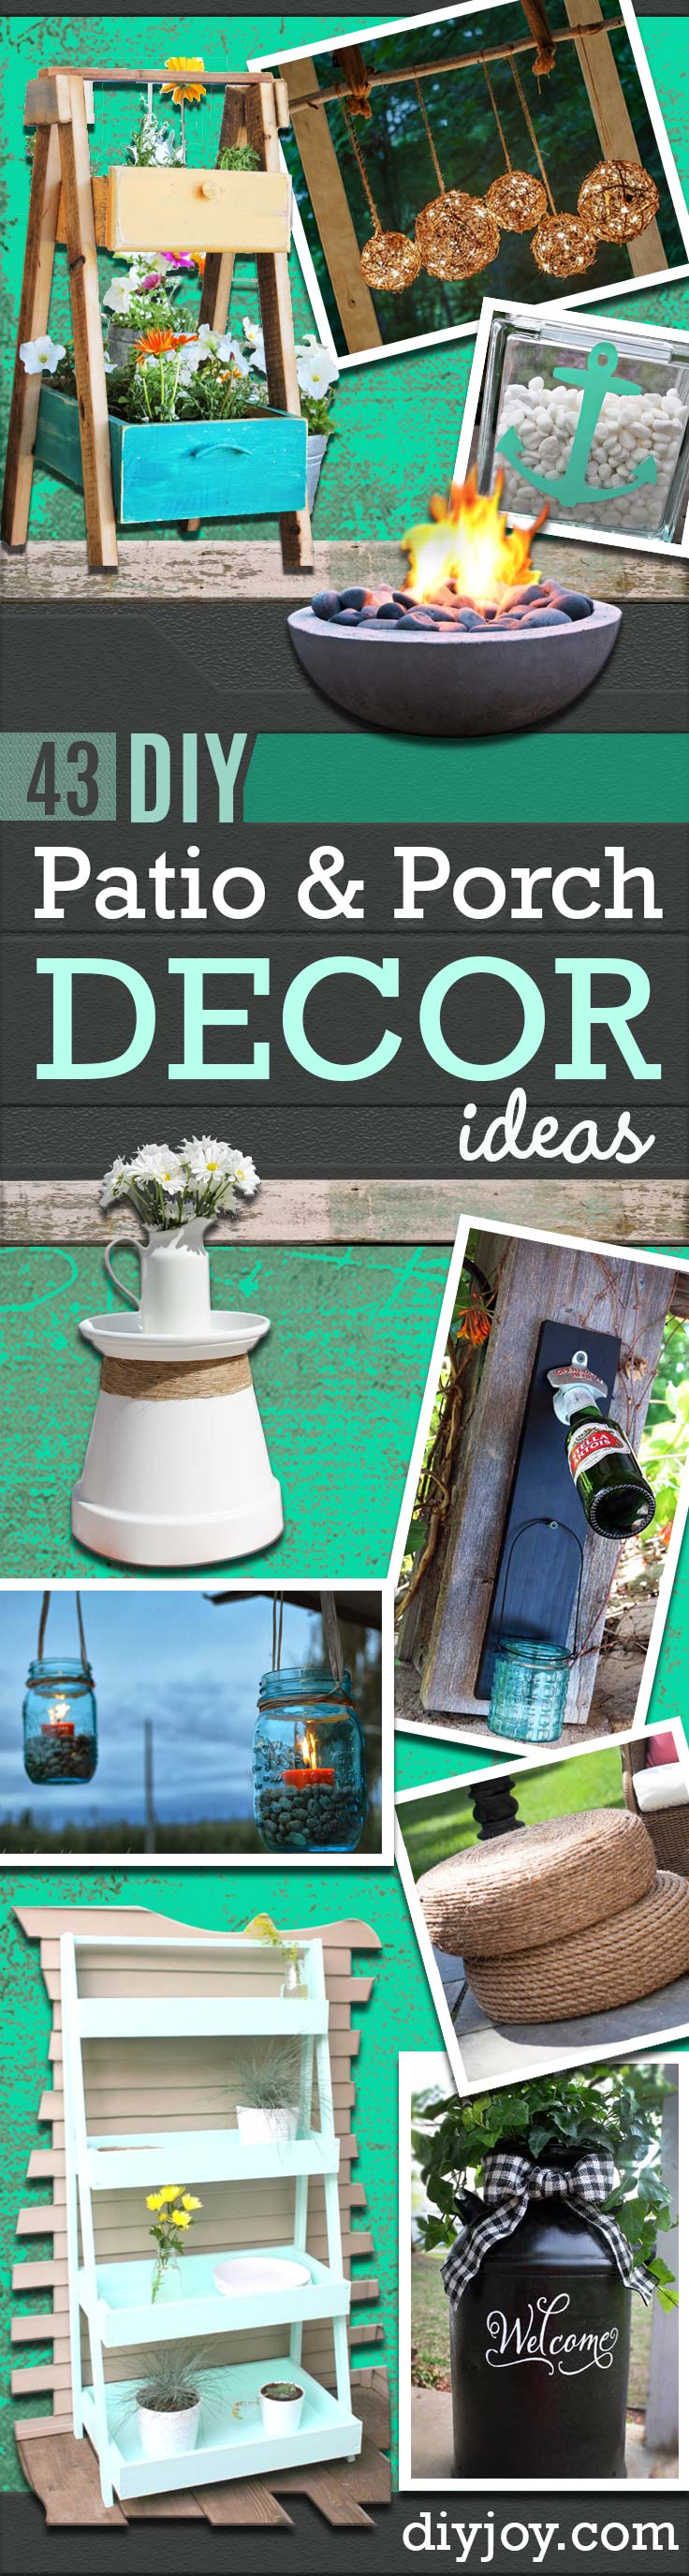 DIY Porch And Patio Ideas   Decor Projects And Furniture Tutorials You Can  Build For The